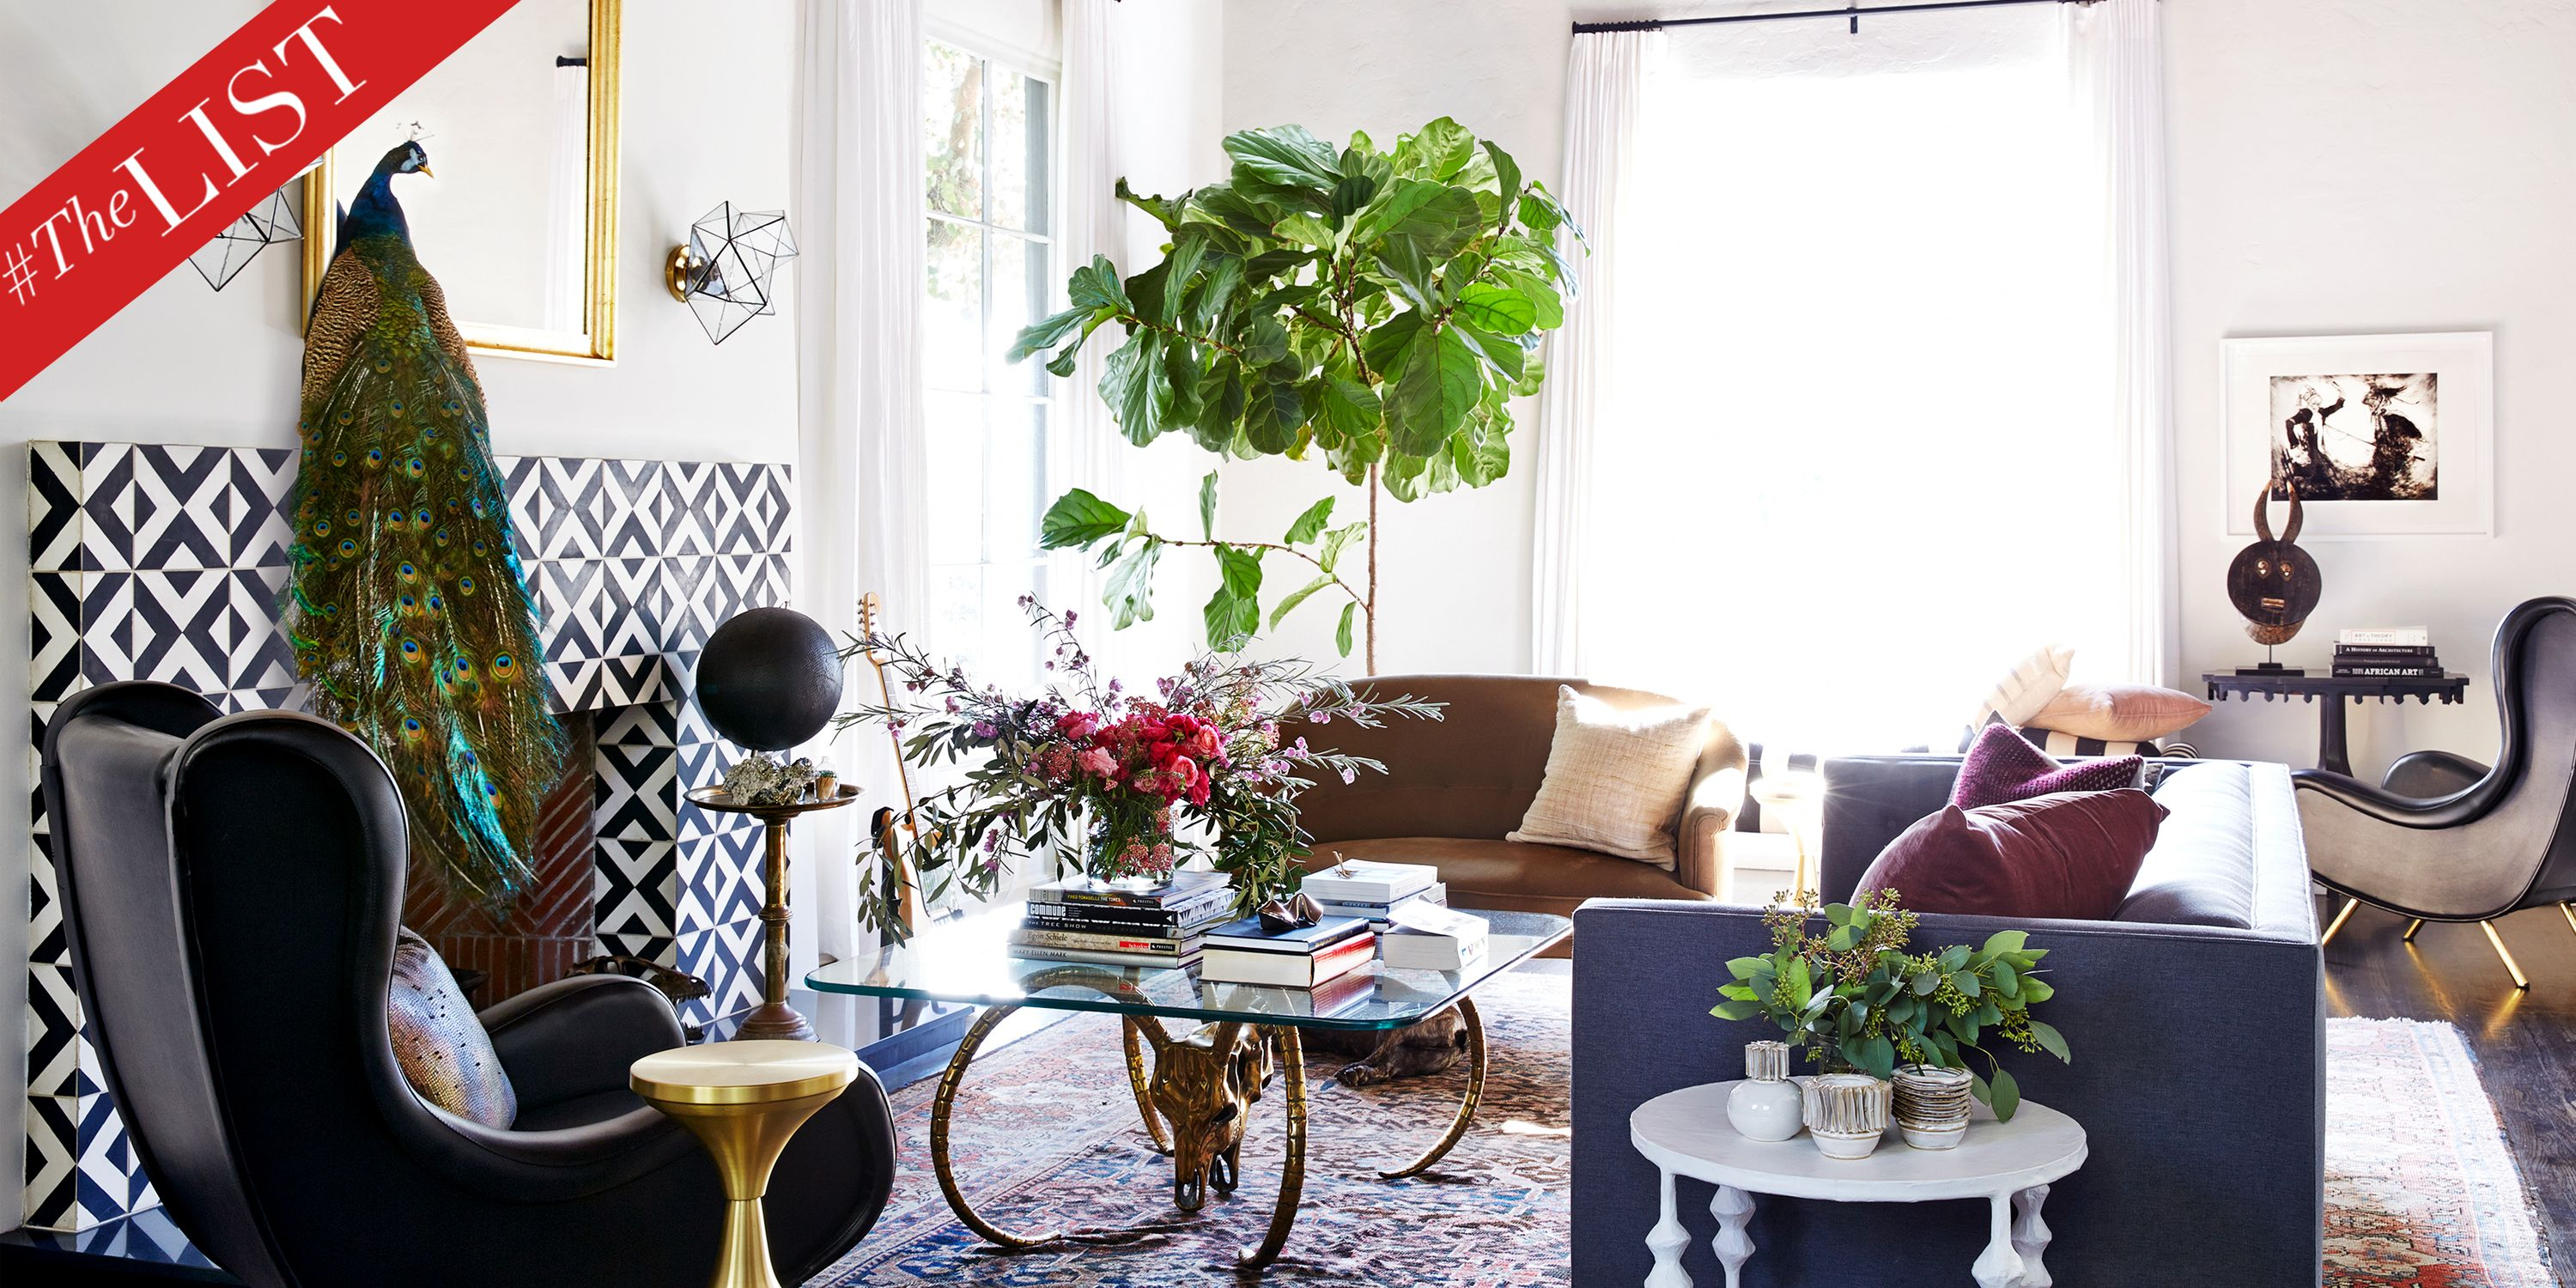 TheLIST: How To Give Your Interiors a Fresh Summer Update